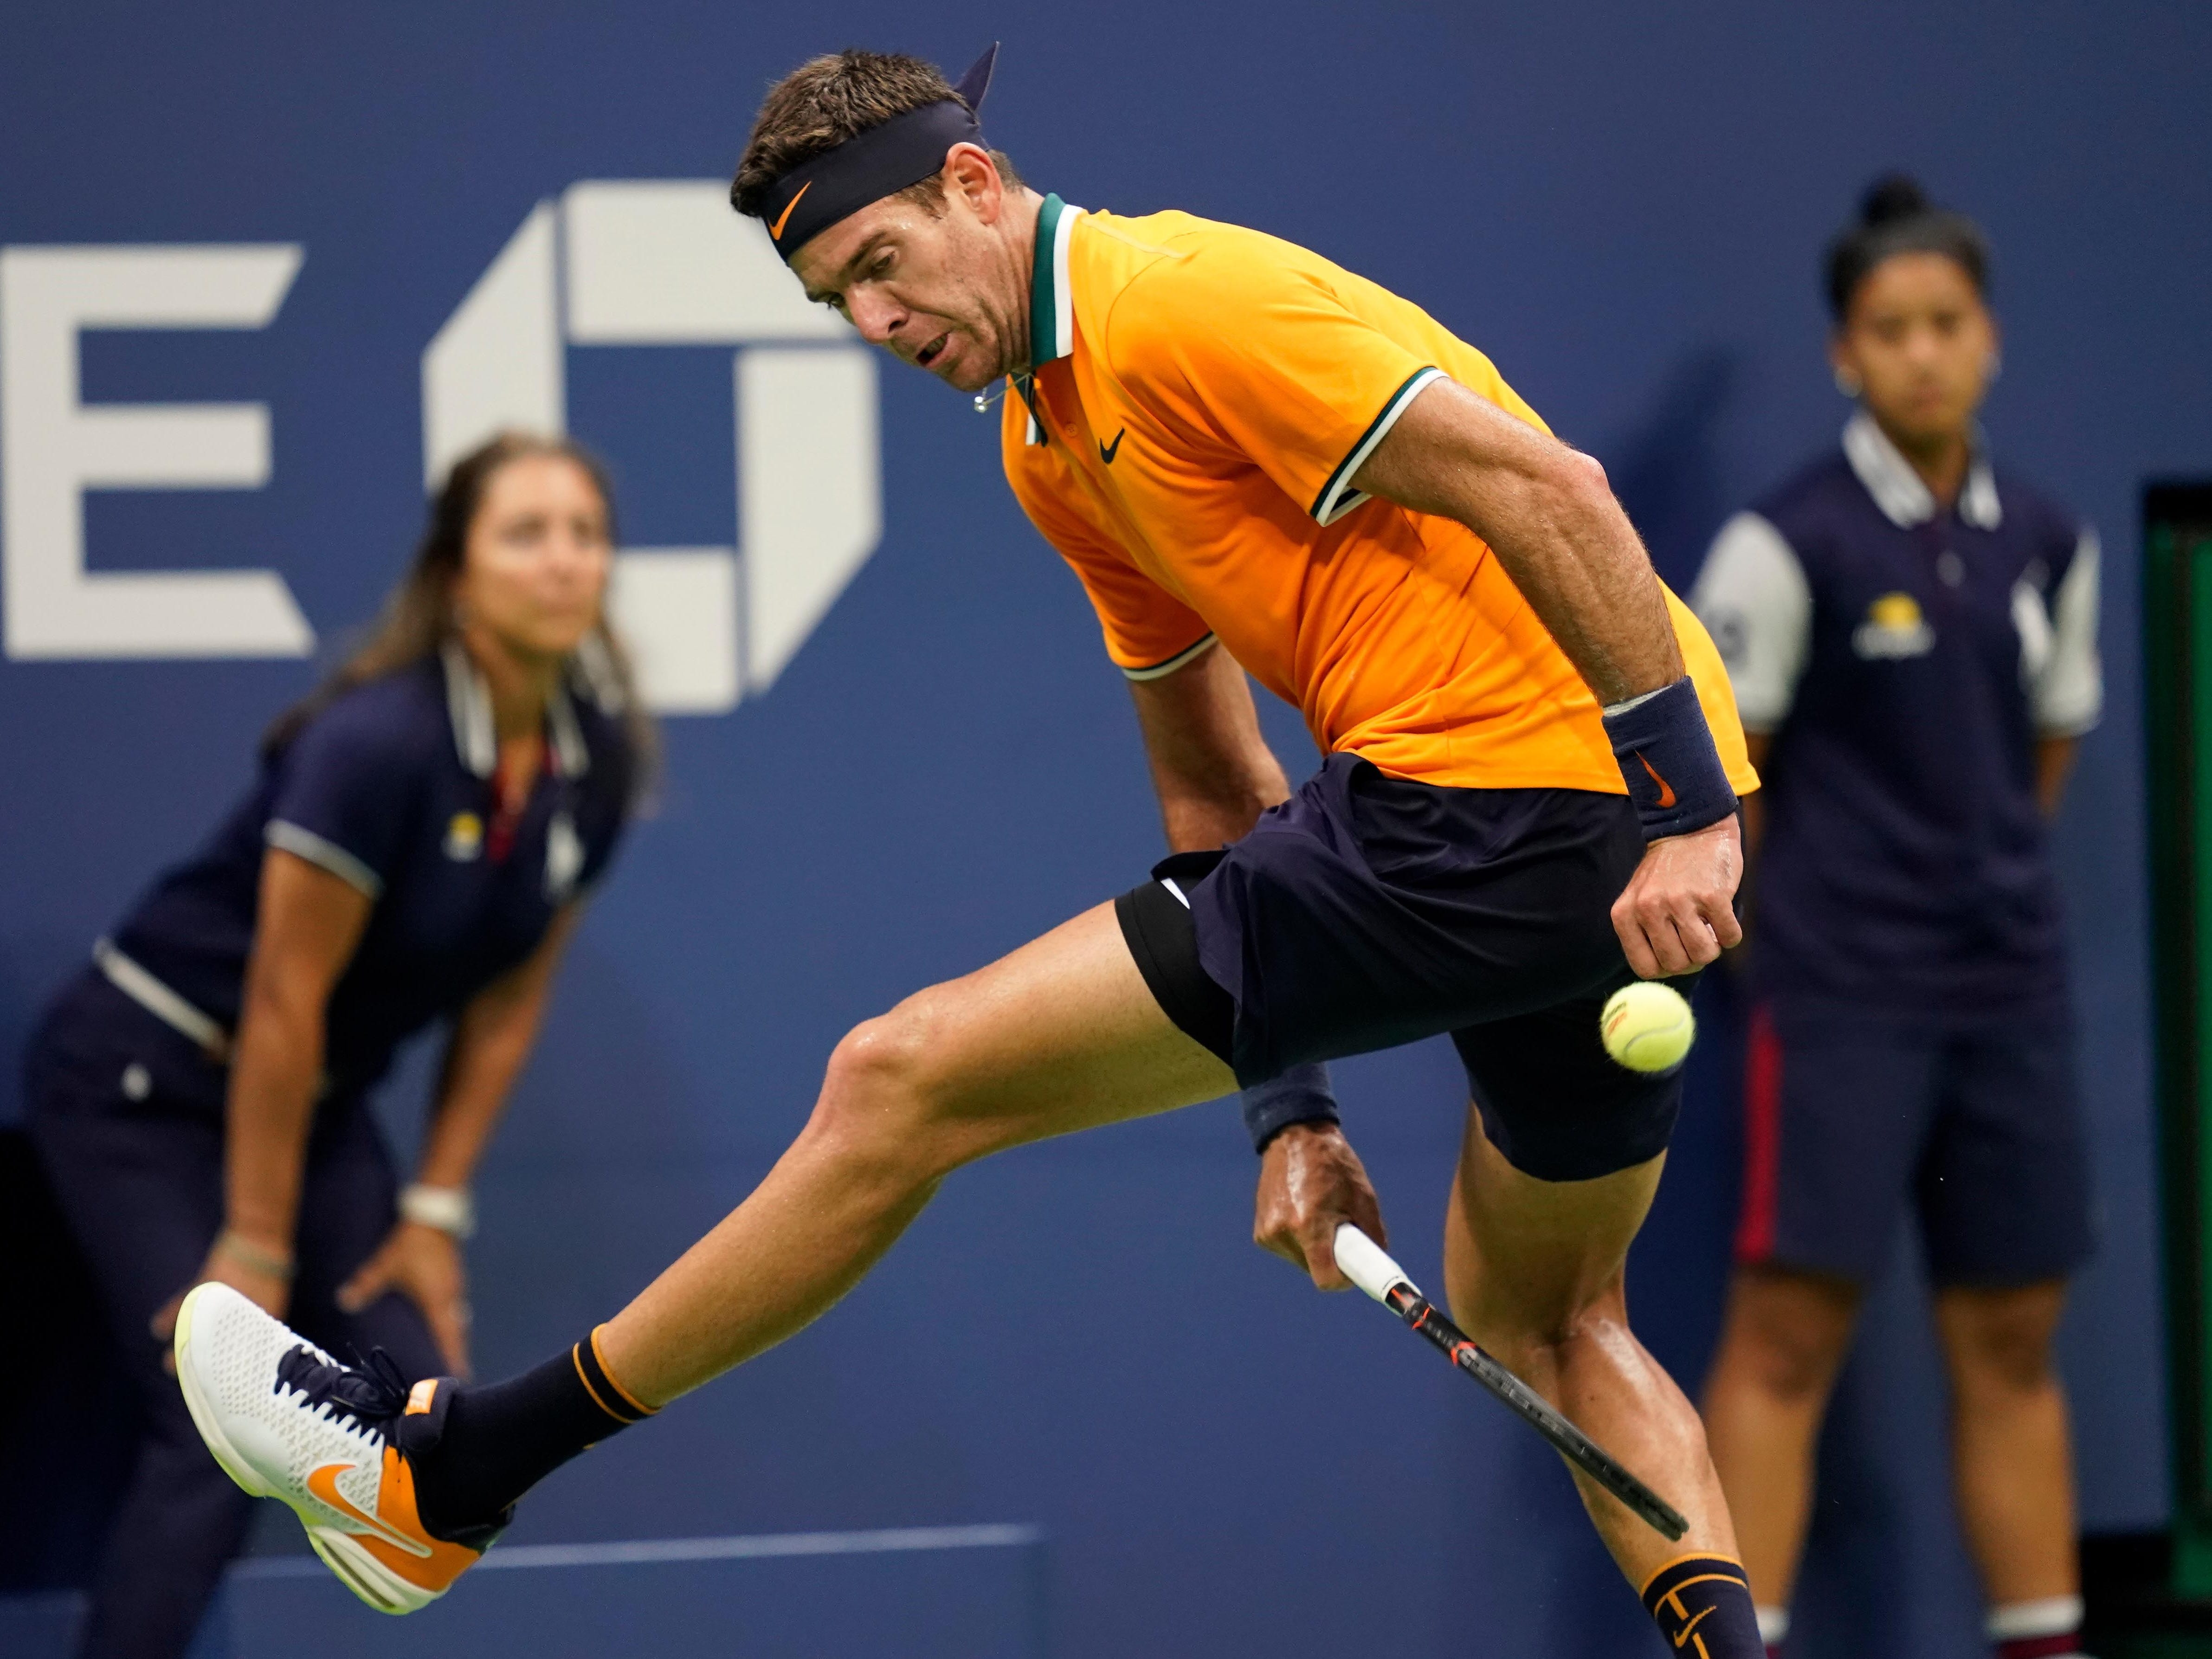 Juan Martin del Potro plays a shot between his legs against Novak Djokovic.